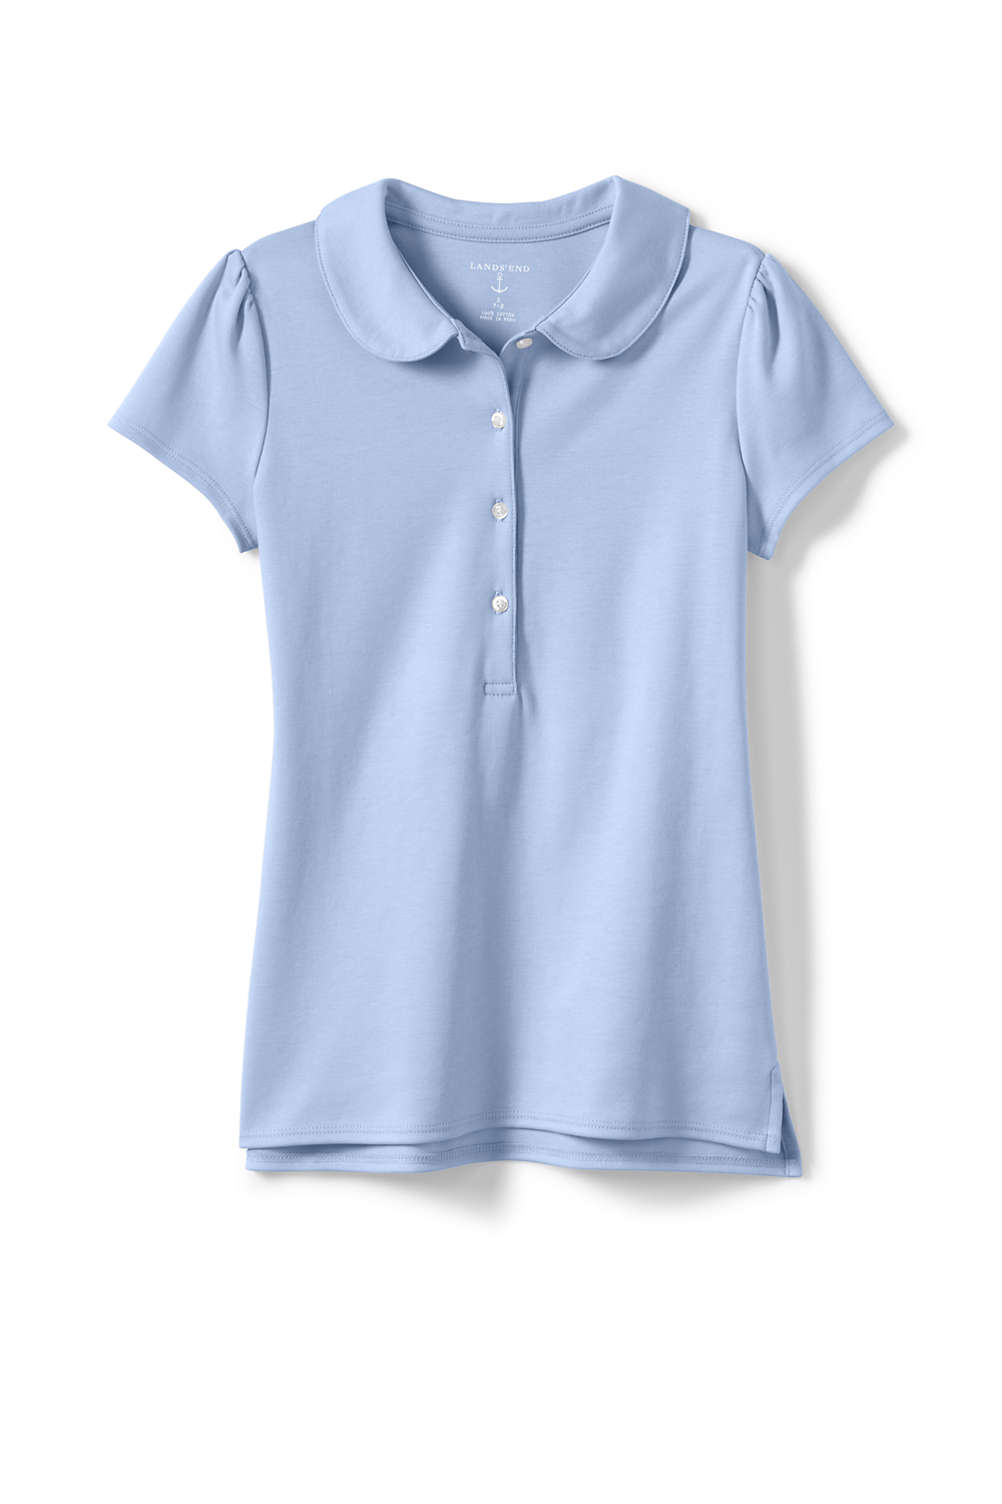 Girls Short Sleeve Peter Pan Polo From Lands End